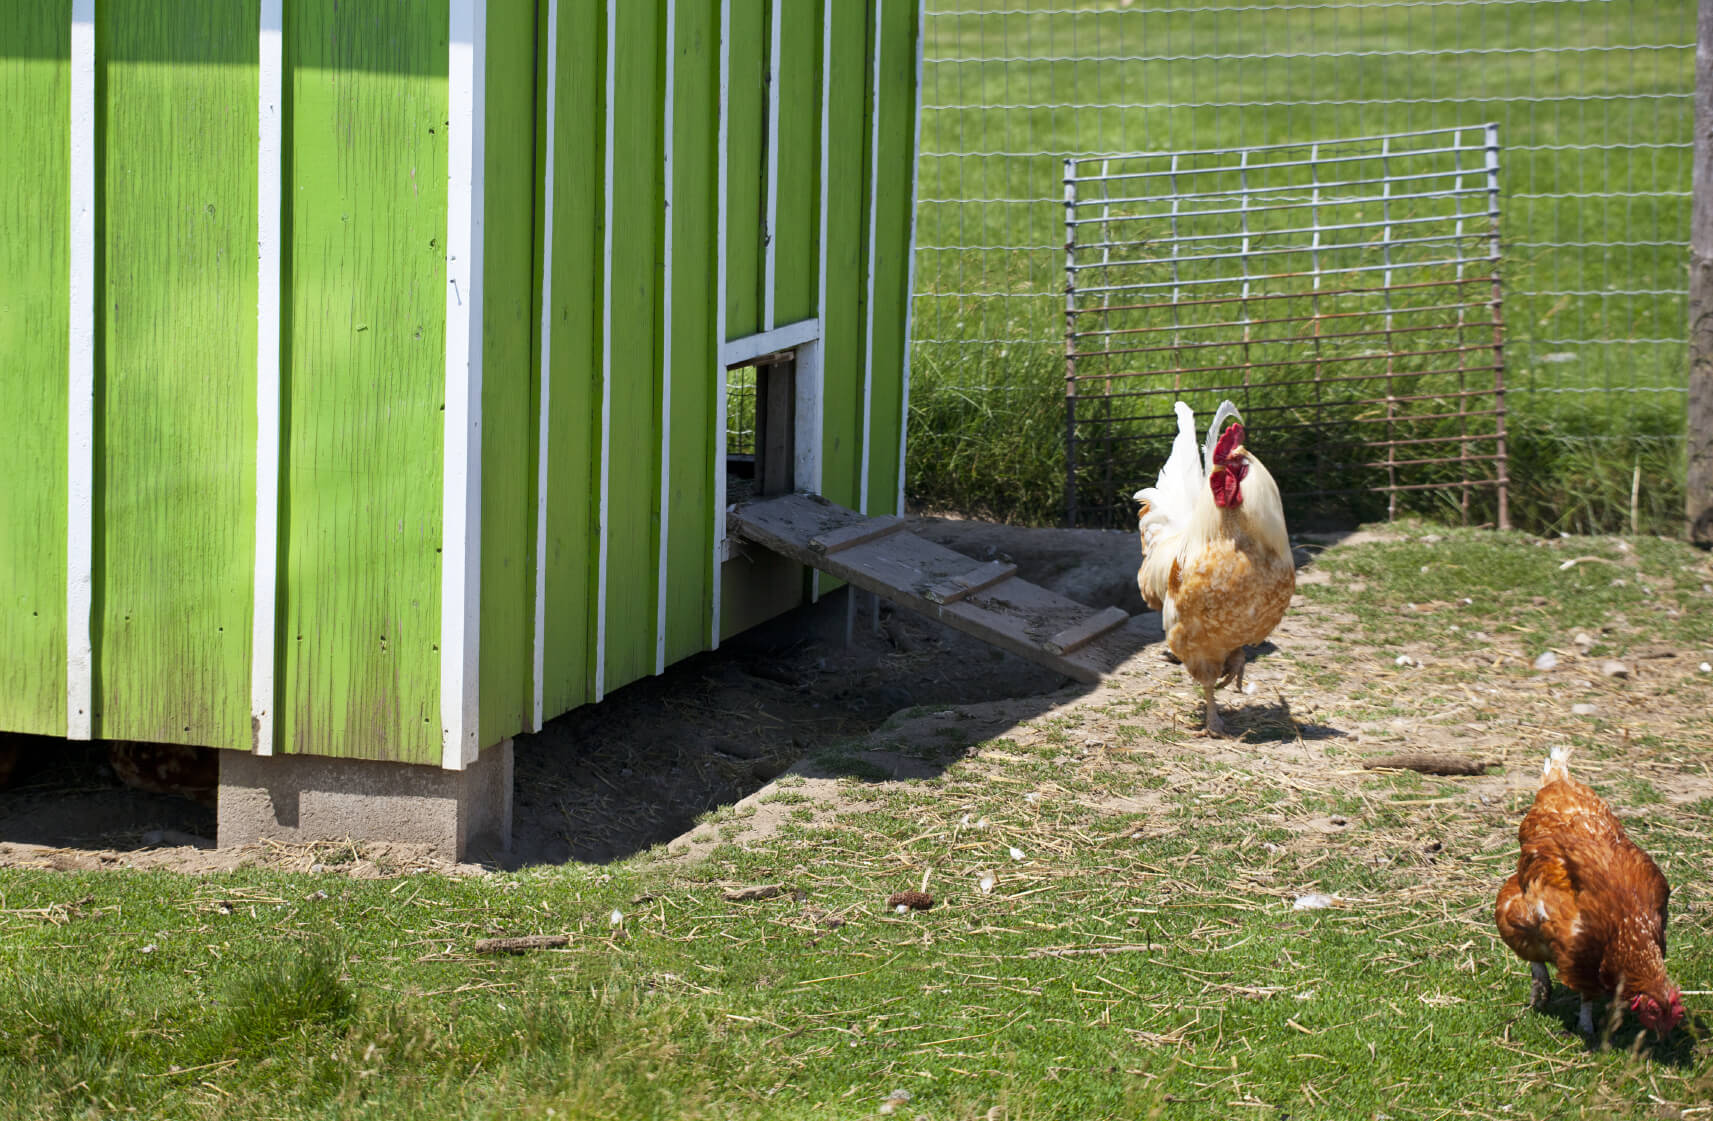 Here's a standard professional-sized chicken coop, standing about human height, and painted with a bright green and white striped coat. If you're experienced and looking to grow, this is an ideal solution.